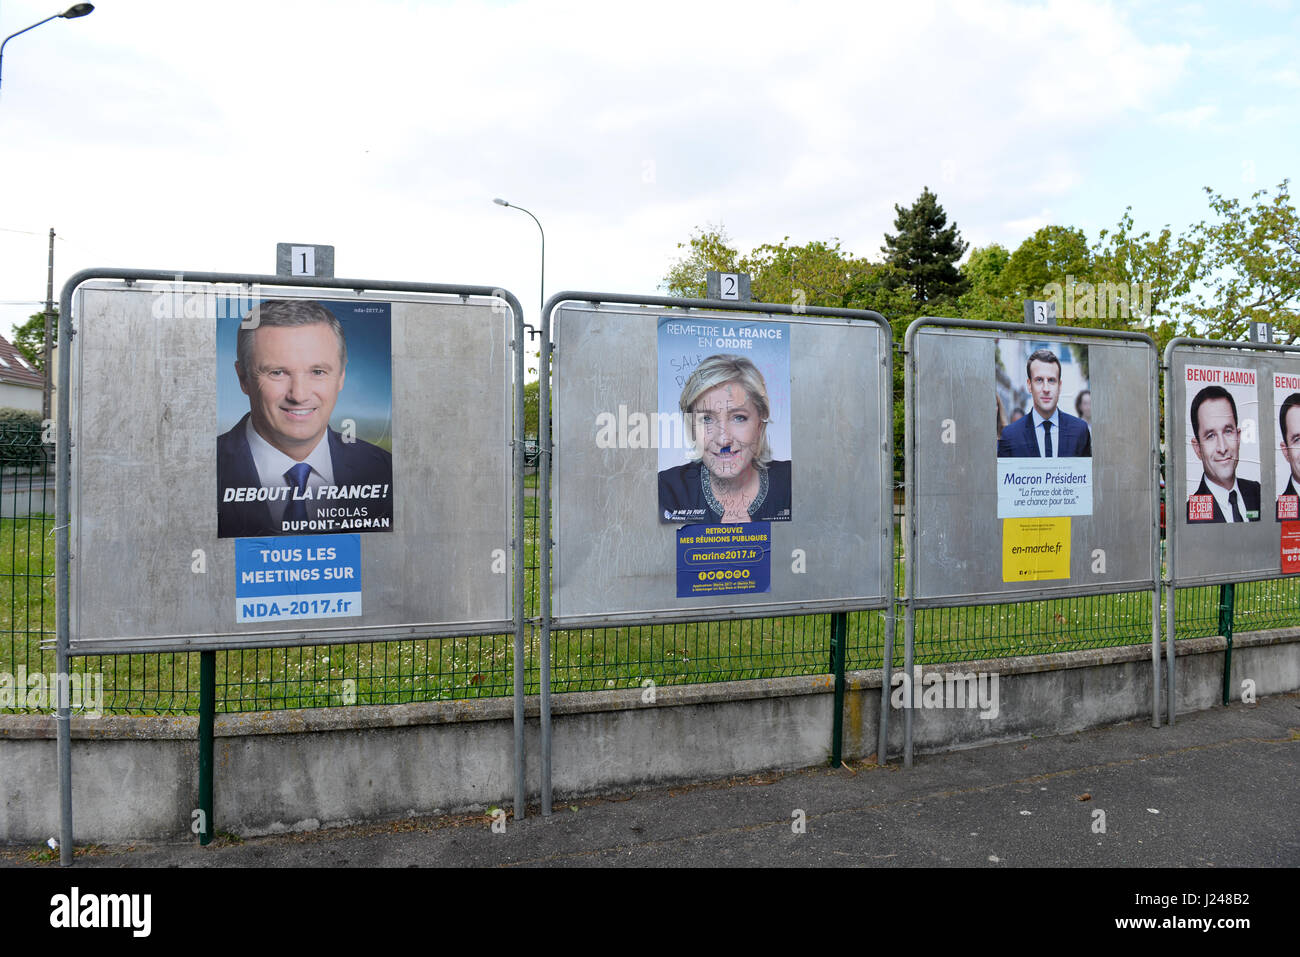 France elections 2017 live - 23rd Apr 2017 Conflans Sainte Honorine Polling Station During The First Round Of French Presidential Elections Credit Fausto Marci Alamy Live News